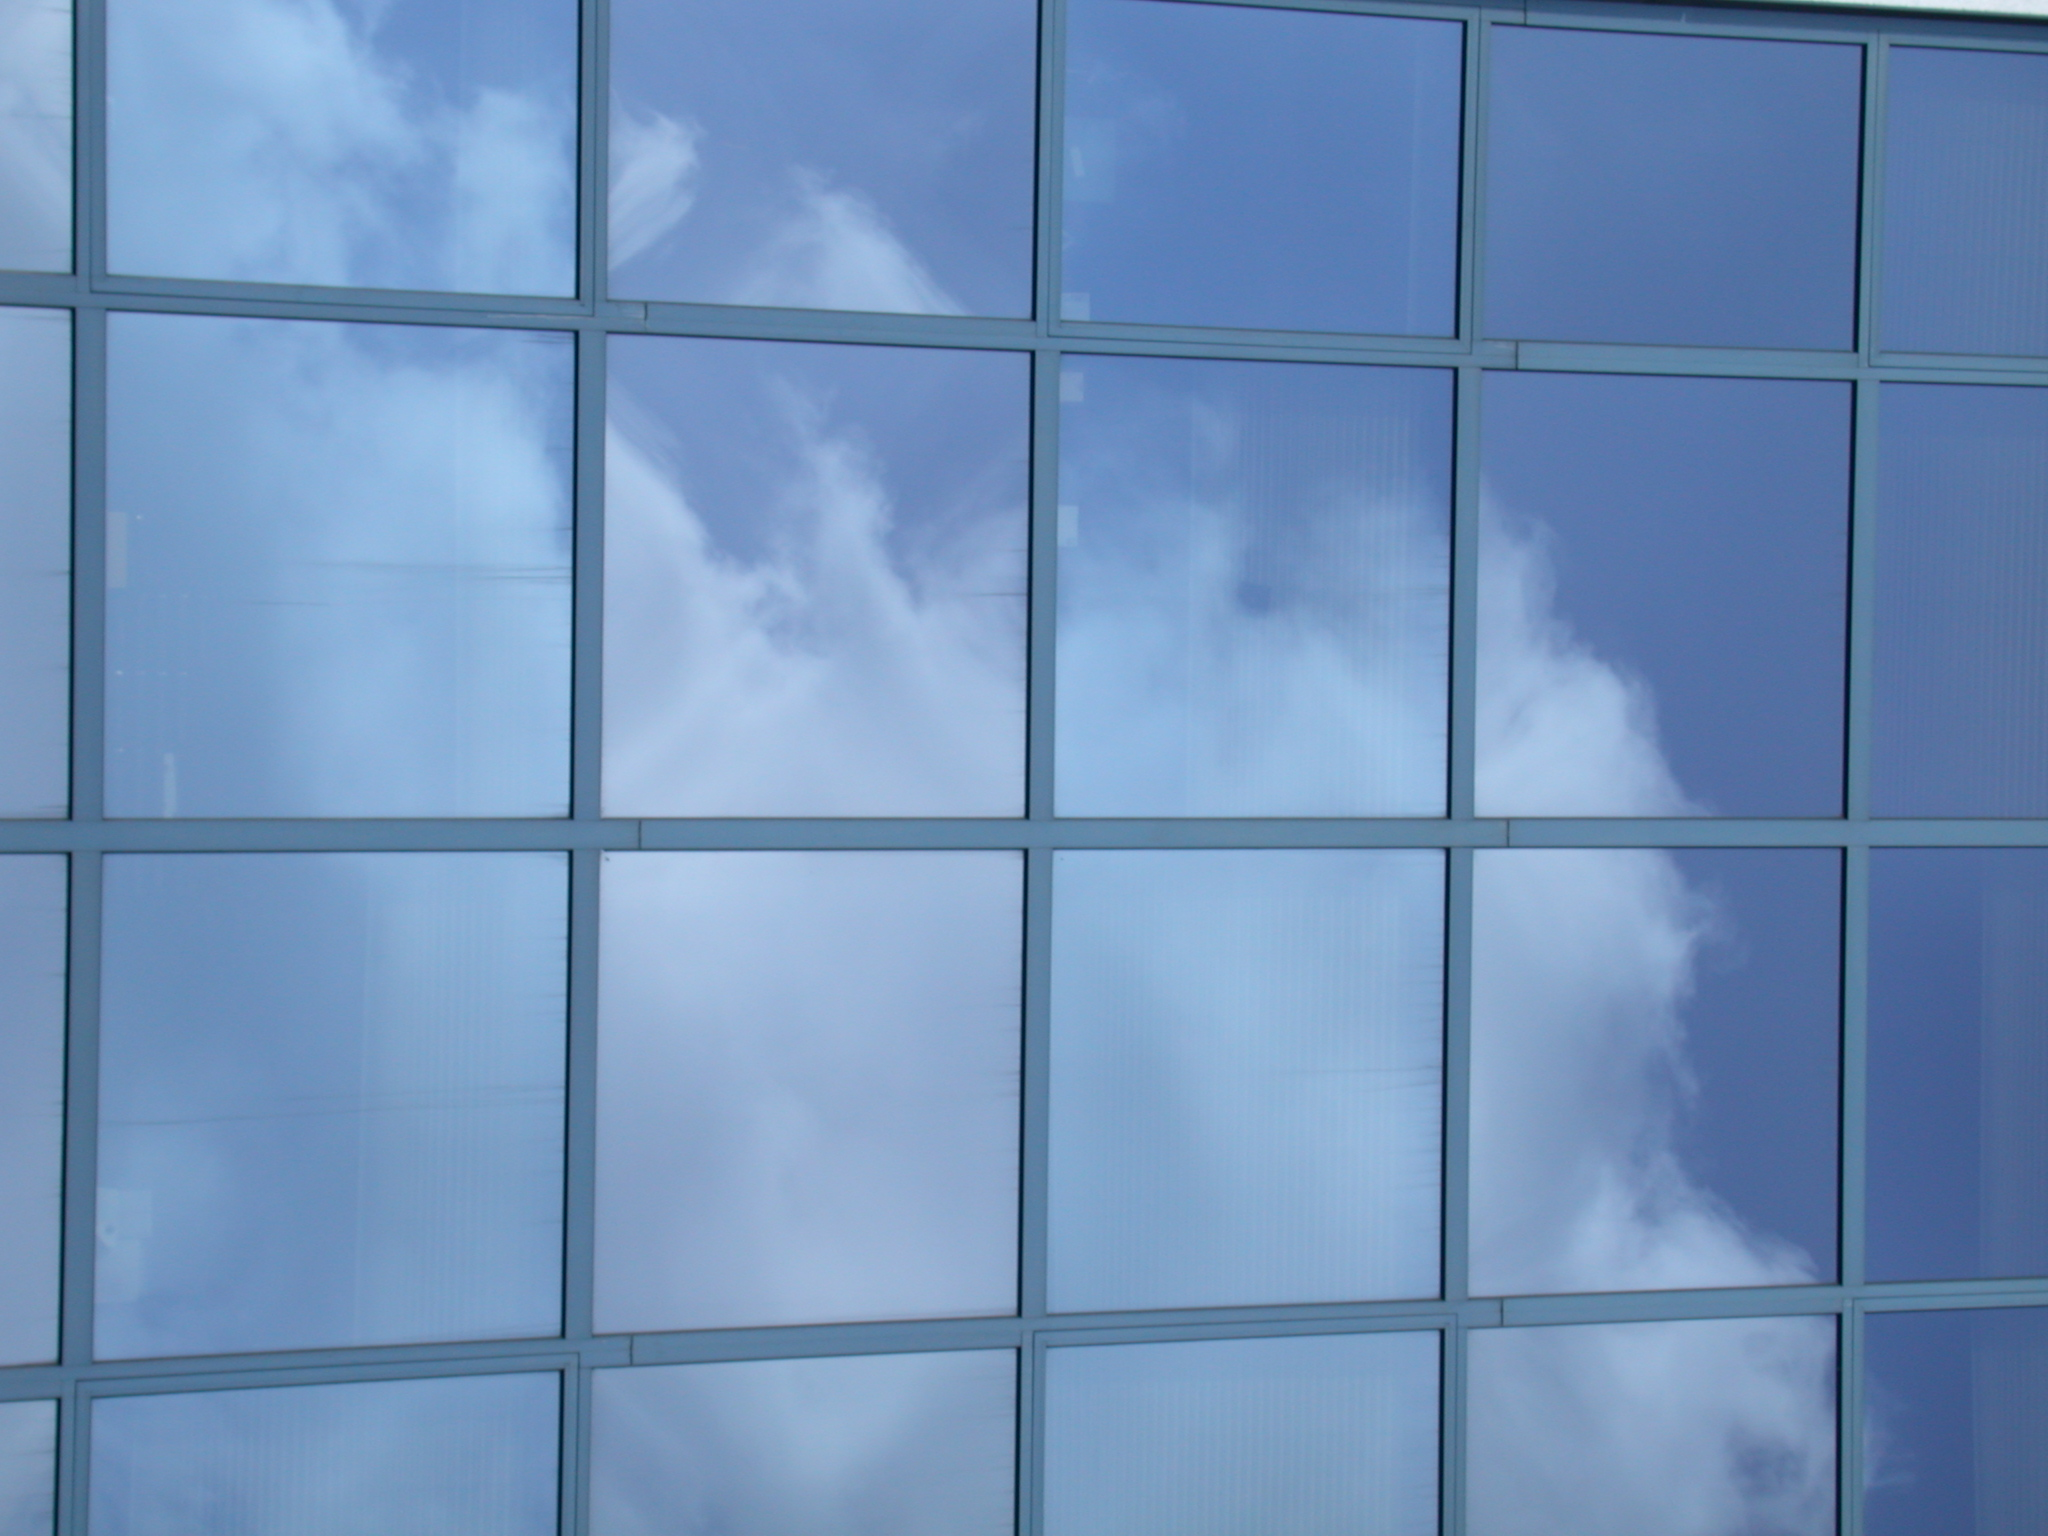 Building Glass Window : Image after photos glass windows building clouds sky